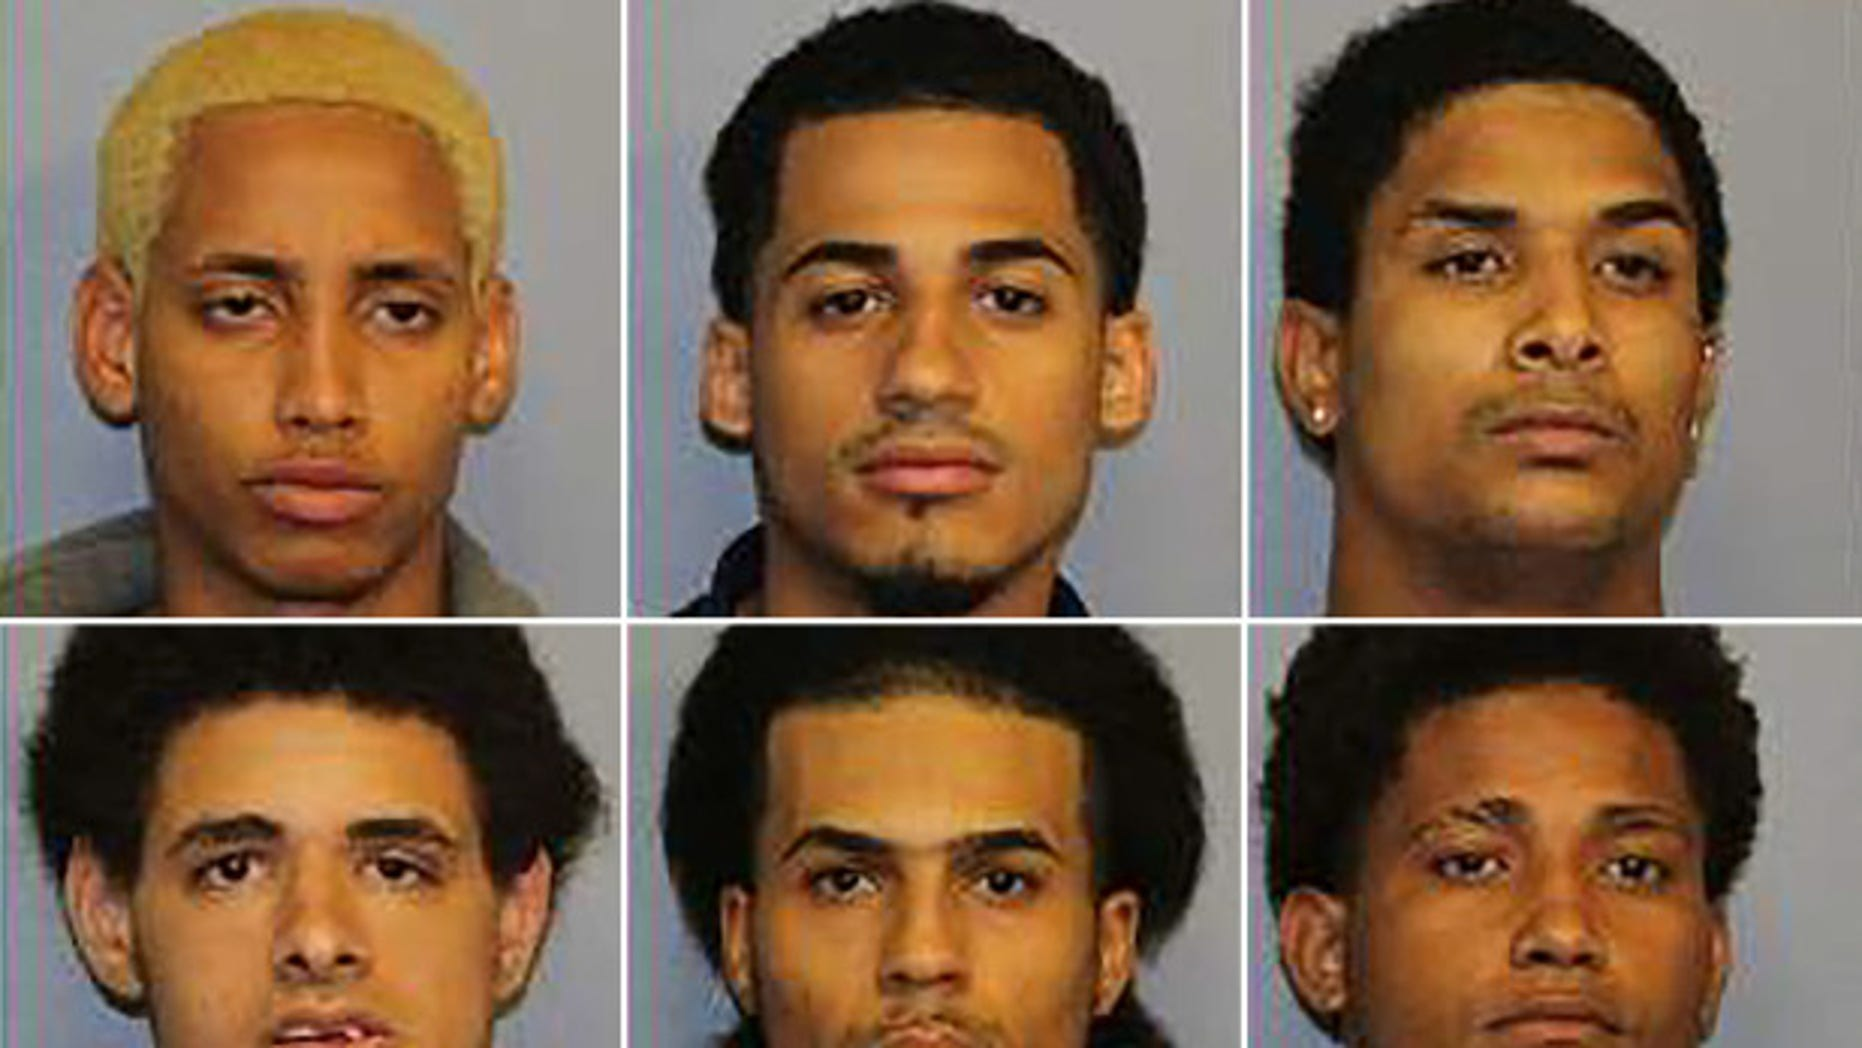 Danel Fernandez, top center, Jose Muniz, bottom left, and Santiago Rodriguez, bottom right, were among 8 suspects charged with the murder of an innocent 15-year-old from the Bronx last month.